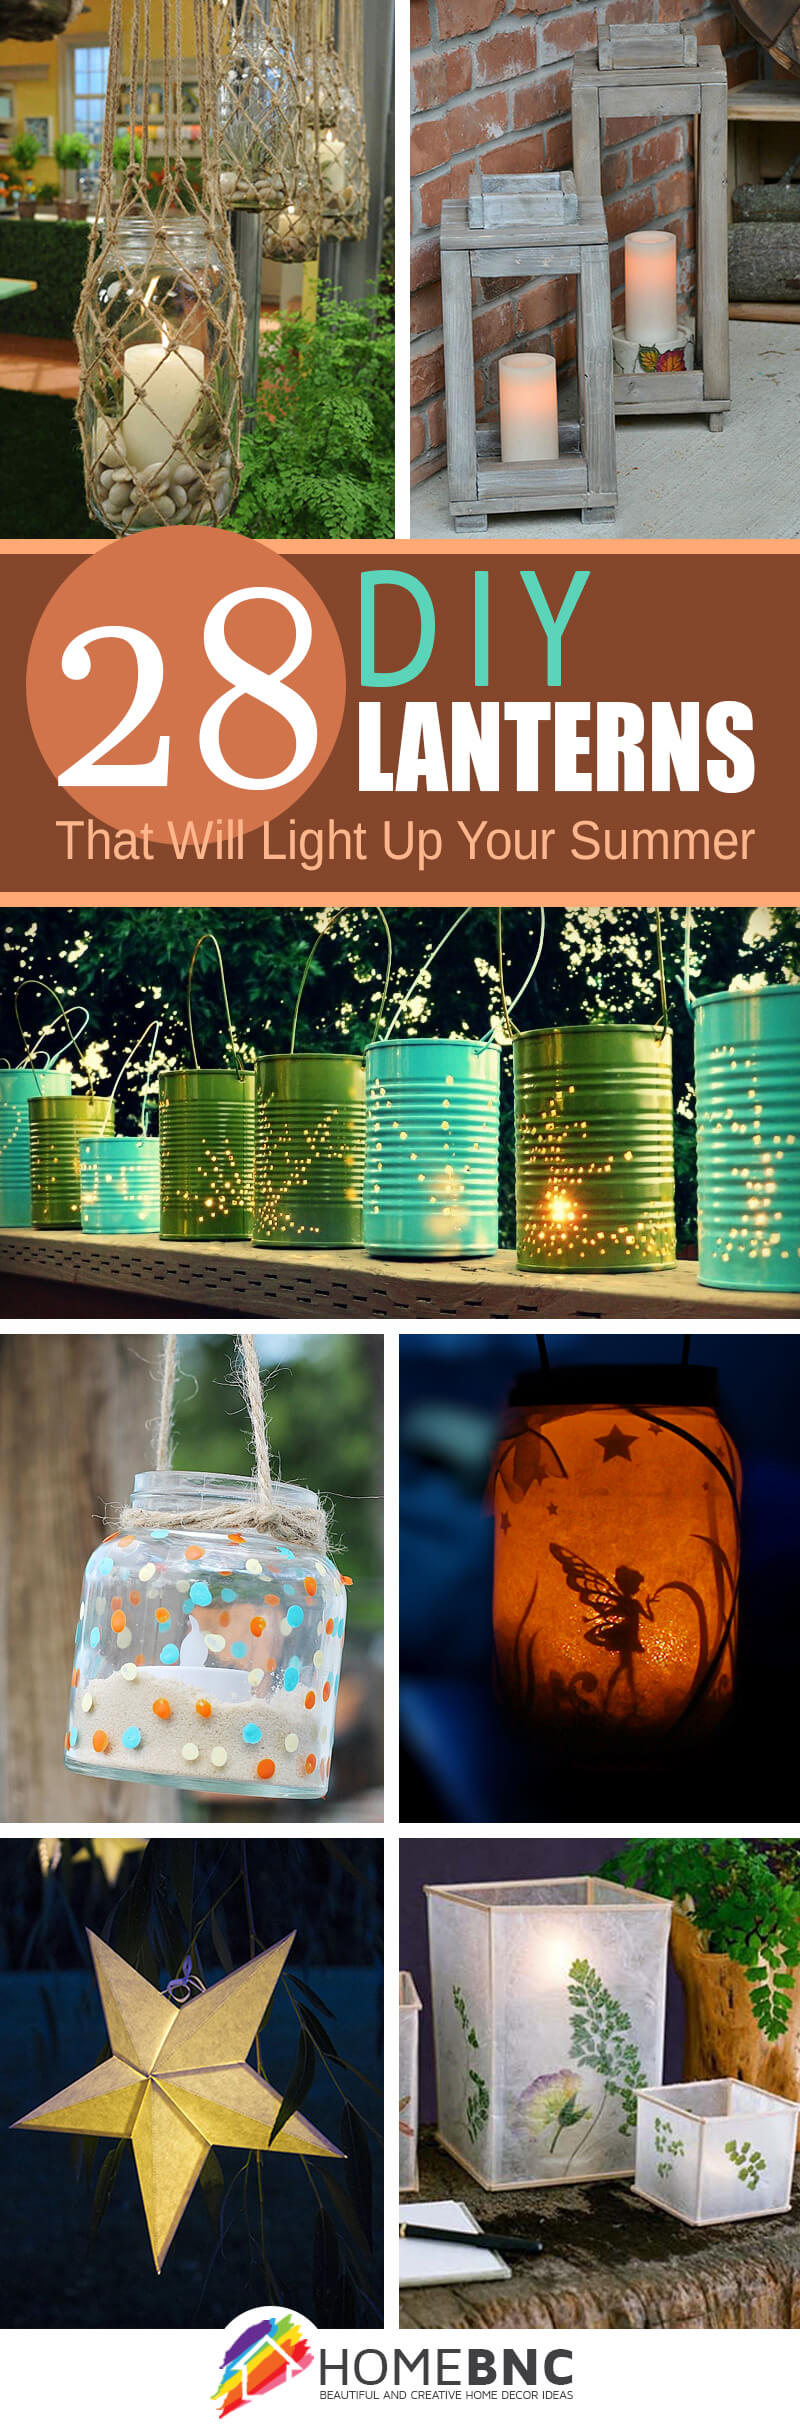 28 Simple DIY Garden Lanterns For Your Next Outdoor Party